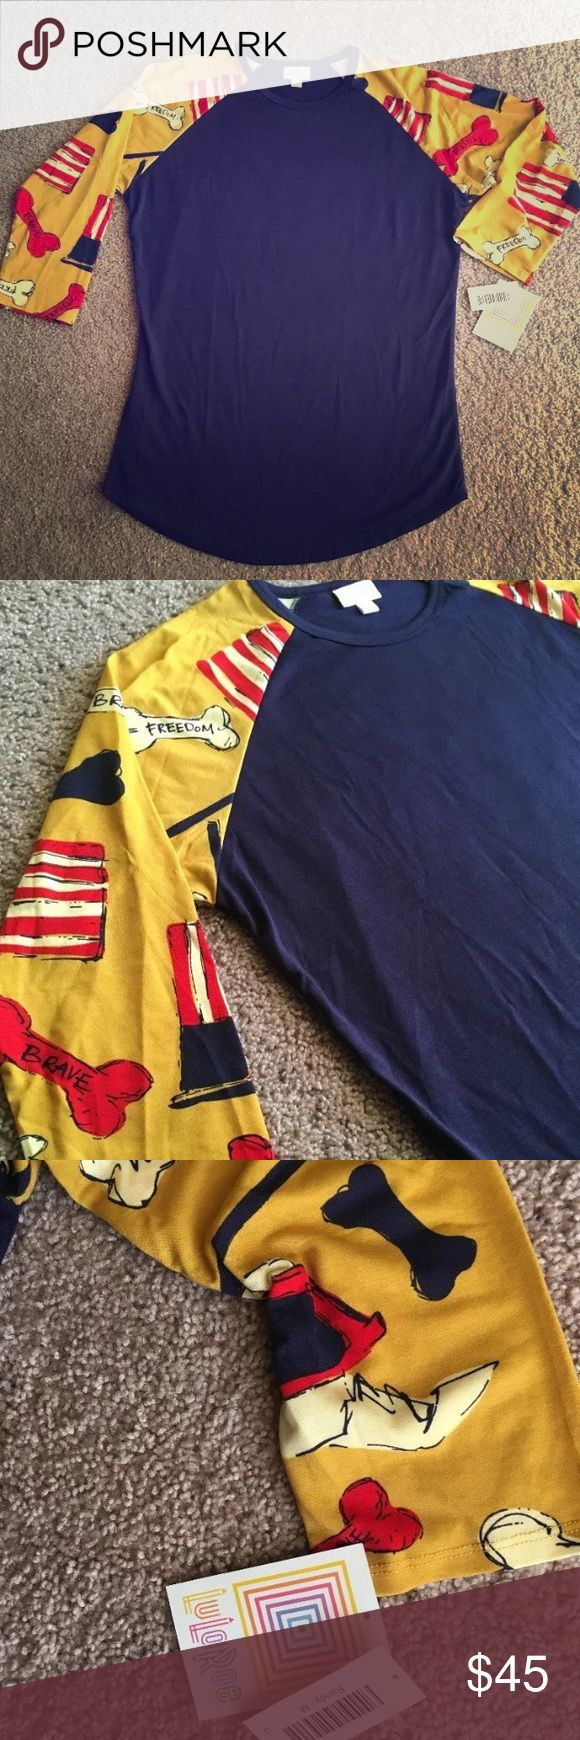 Lularoe Americana Bulldogs Bones Flags M Randy Super Hard to find print!! Shirt is new with tags. Super adorable print. Purchase today for me to ship today so you can get in time for the holiday! Would be cute to wear all year round. Comes from a clean and smoke free home. LuLaRoe Tops Tees - Long Sleeve